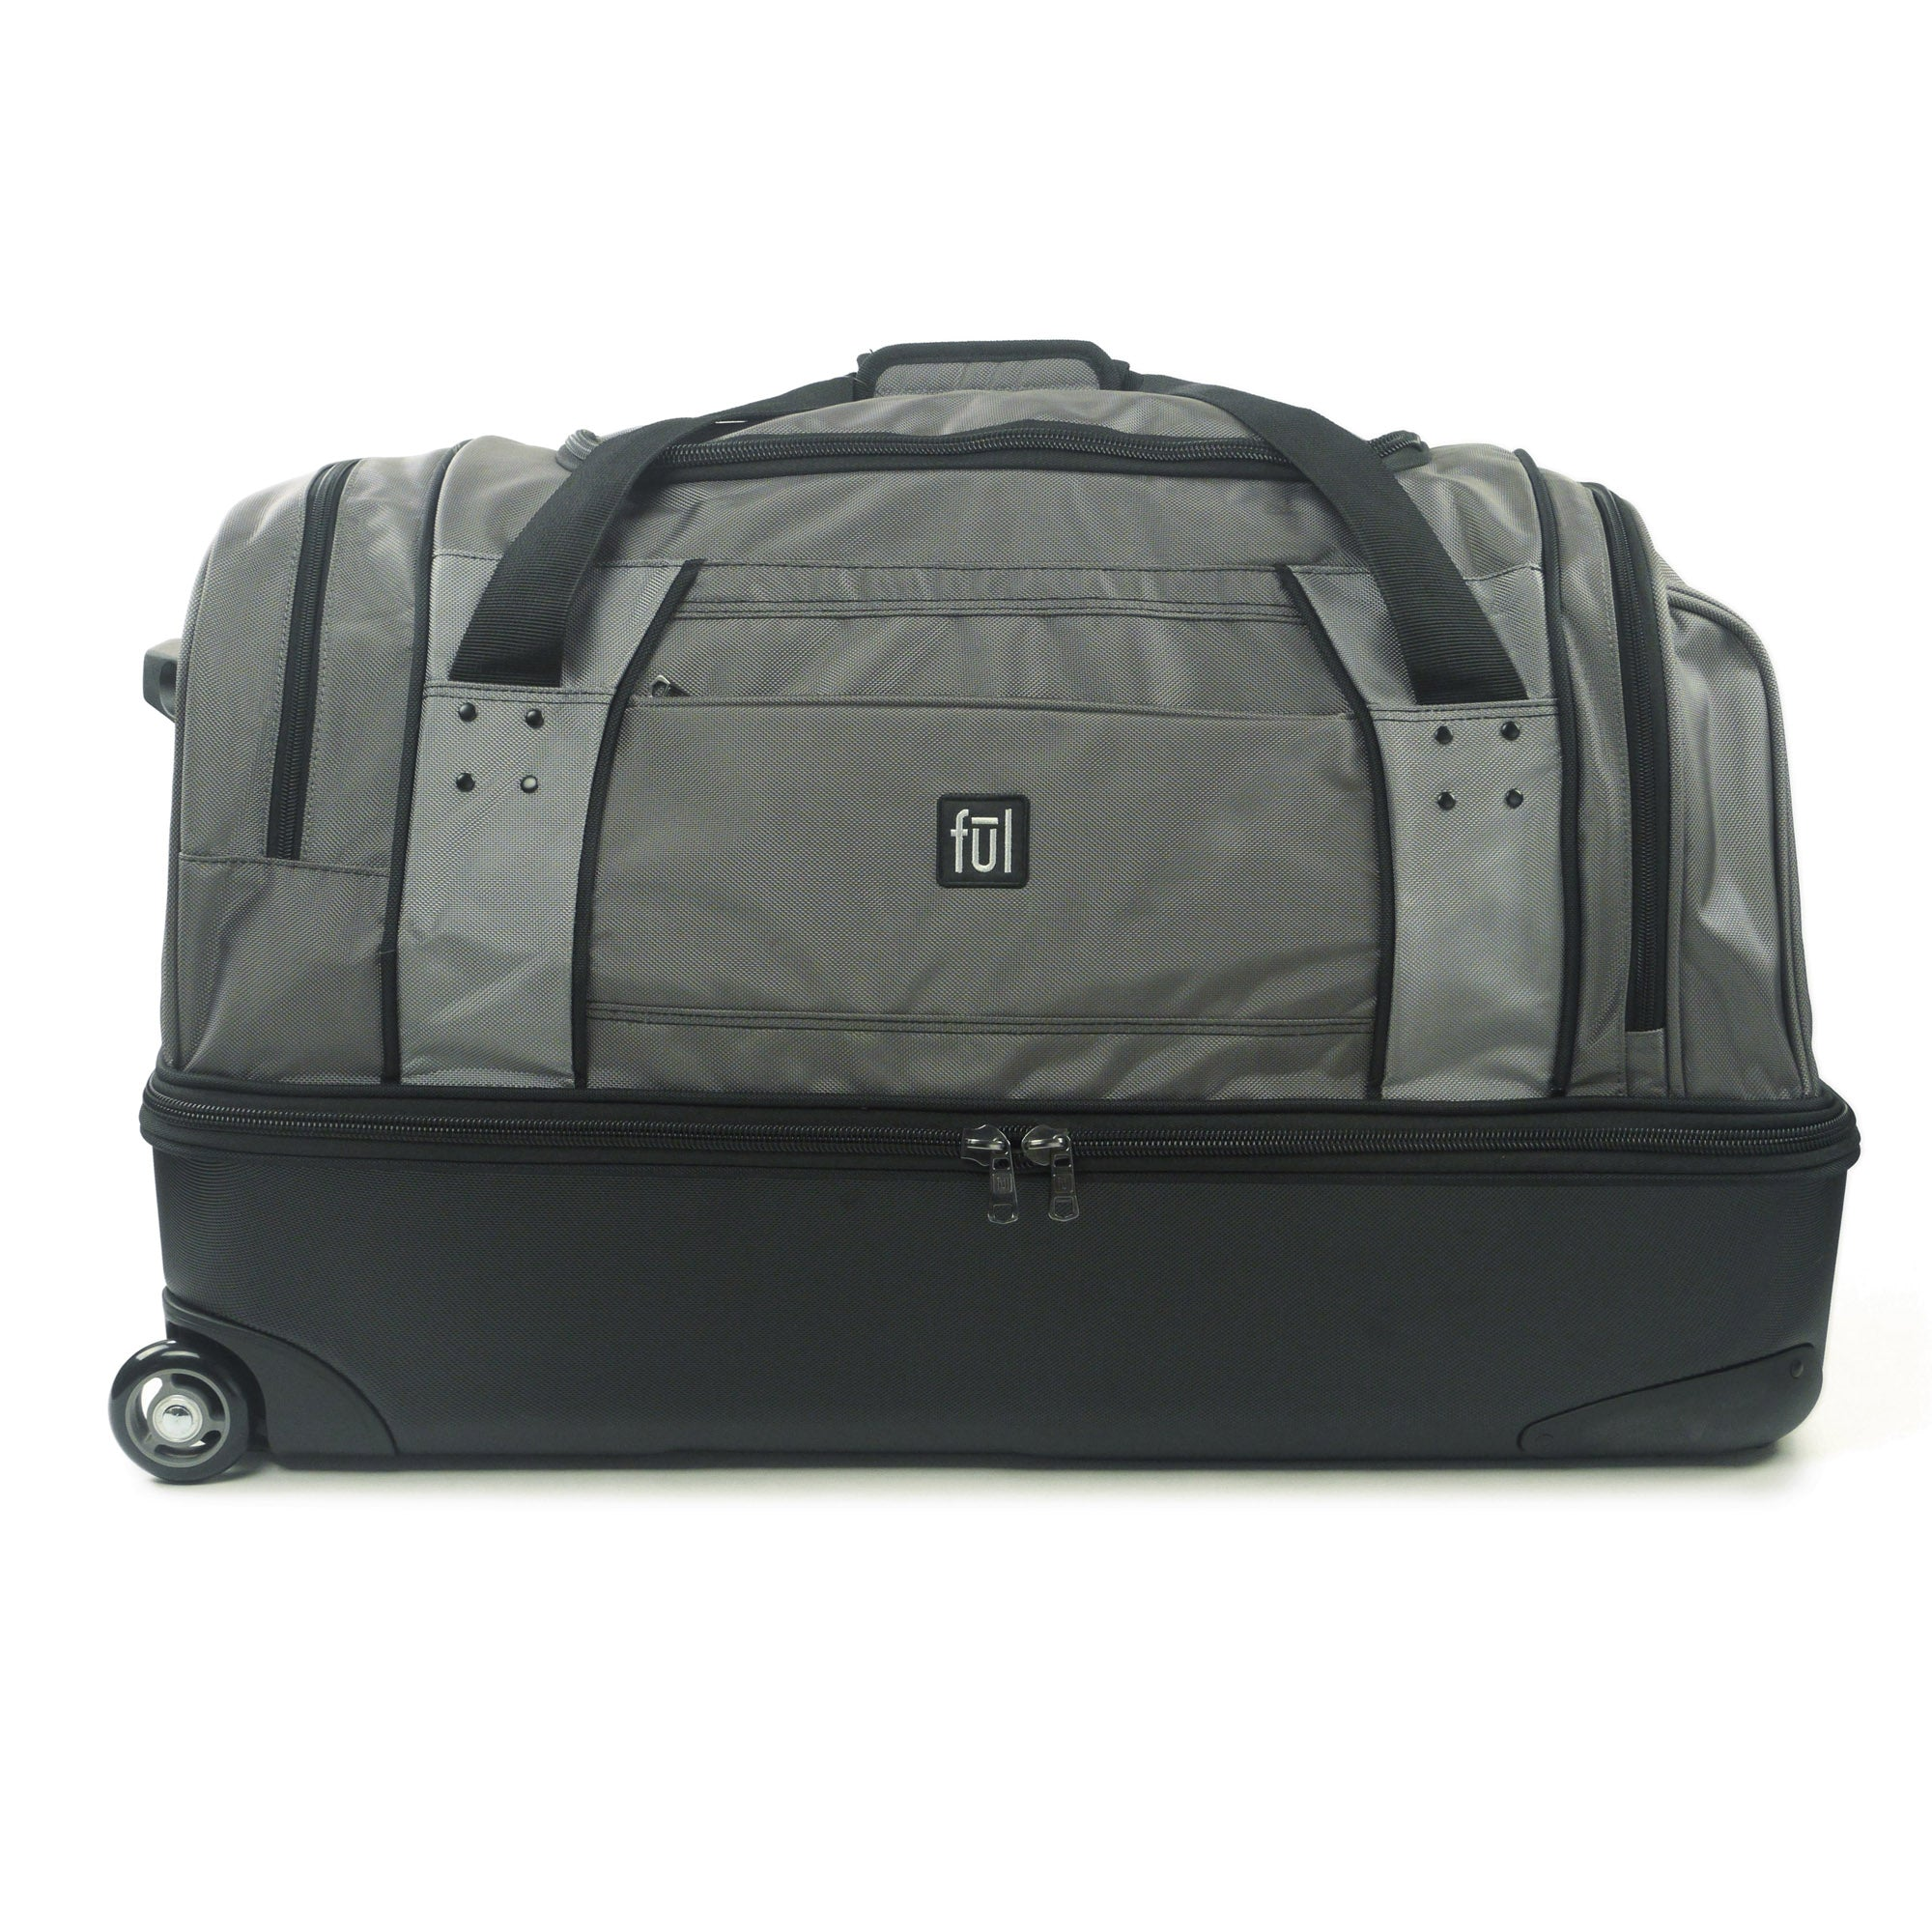 Workhorse 30in Rolling Duffel Bag, Retractable Pull Handle, Split Level Storage, Black